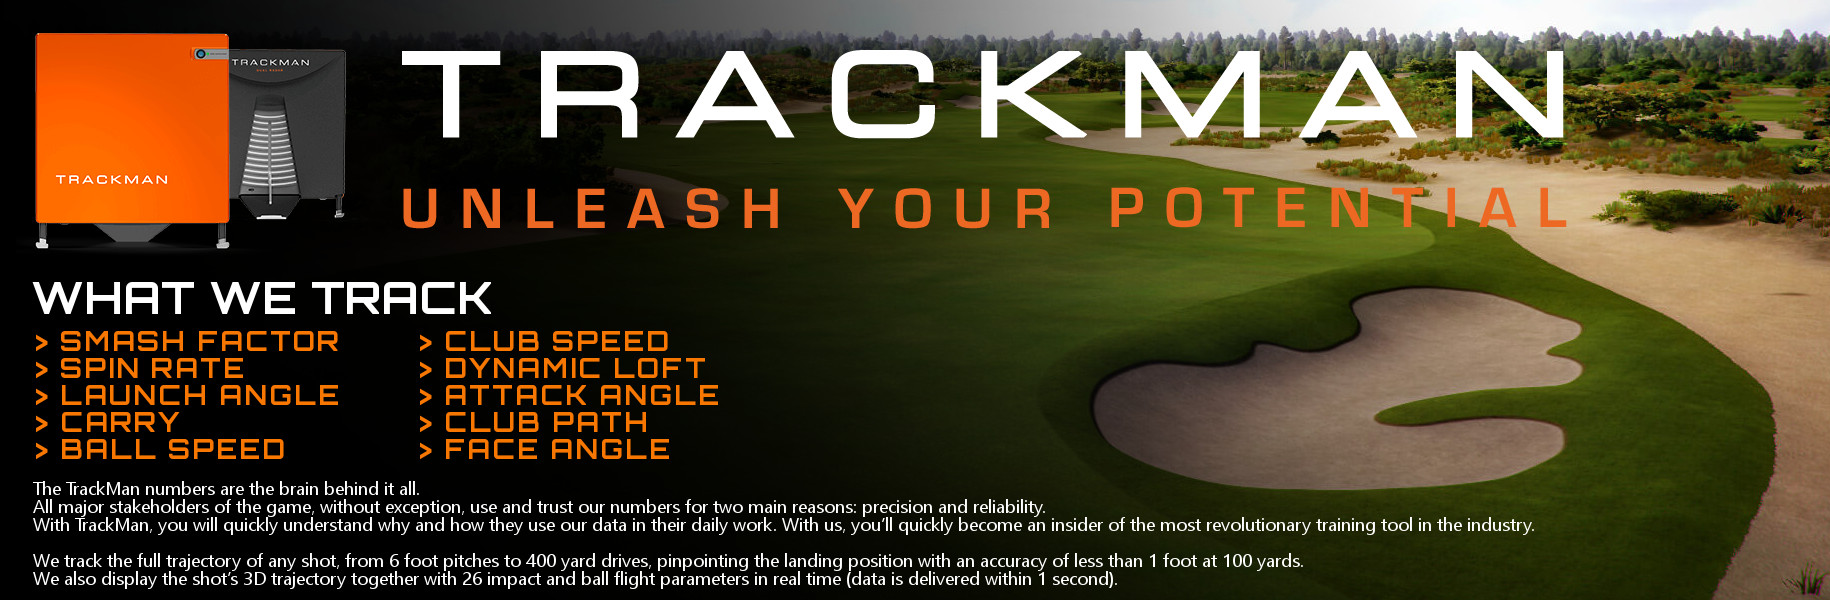 Trackman Custom Fitting